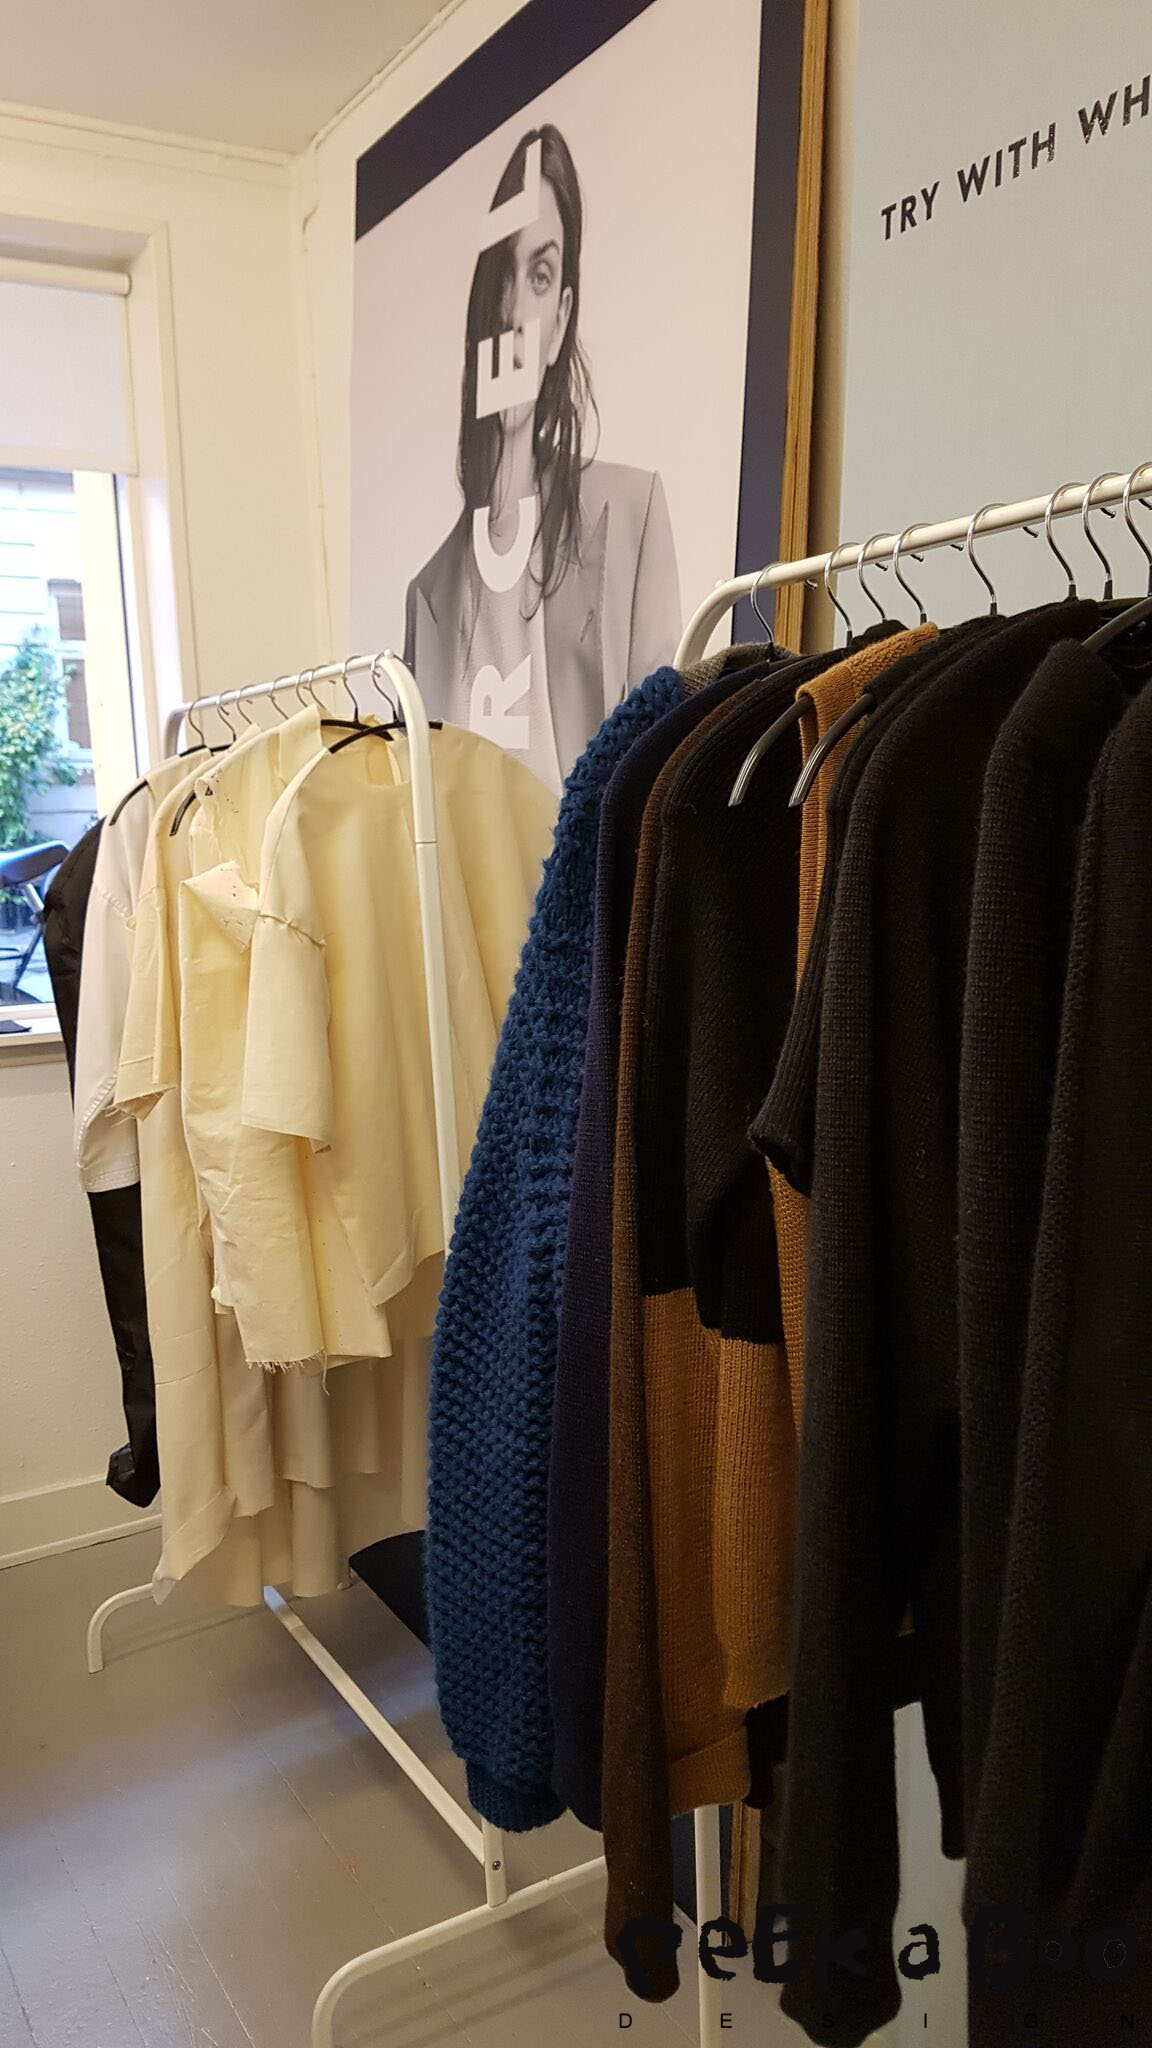 the collection and fittingsamples hanging in the studio of Carcel.